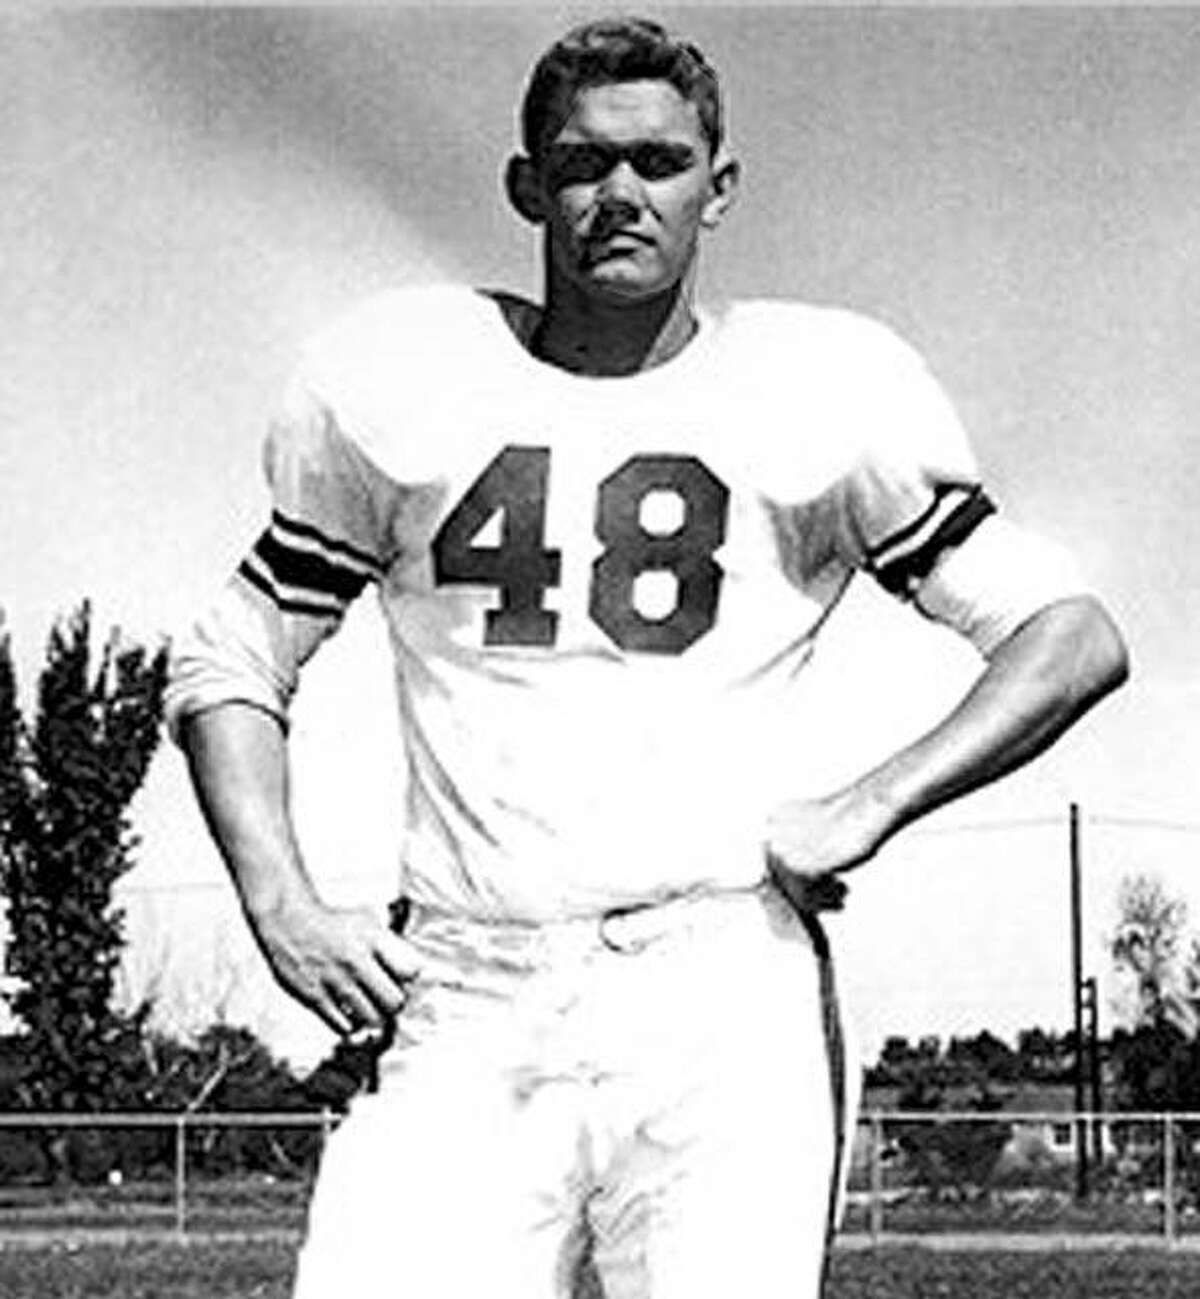 Former Alton, Granite City, EA-WR and West Frankfort football coach Wayne Williams was a standout football and baseball player at SIU Carbondale and is in the Salukis Hall of Fame. Williams died Friday evening at age 85.